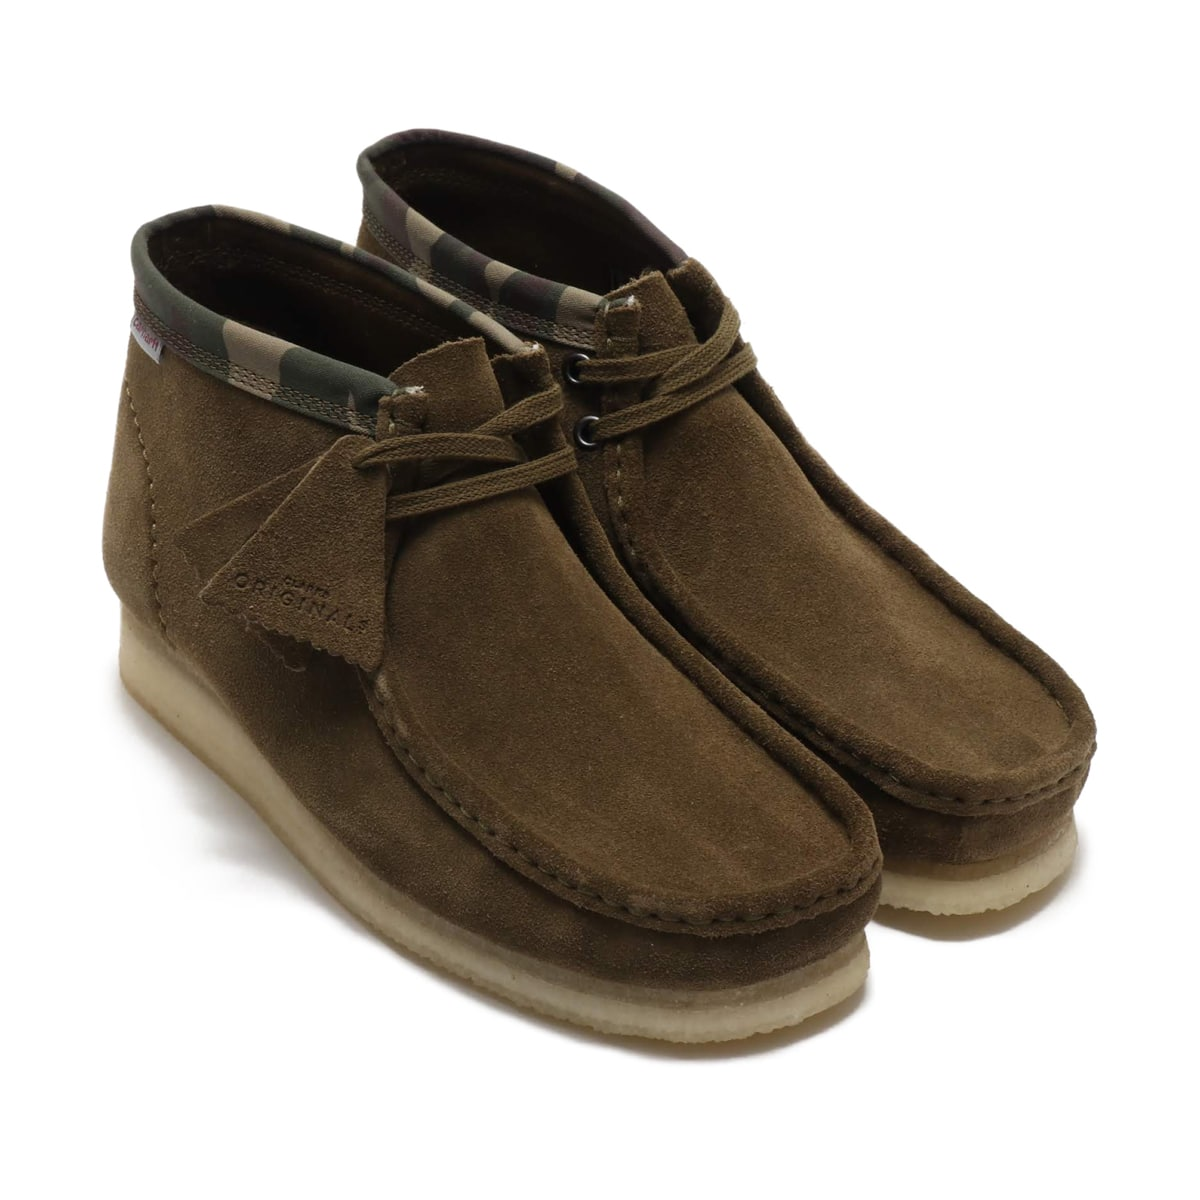 Clarks x Carhartt WIT Wallabee Boot Olive Camo 19FW-S_photo_large